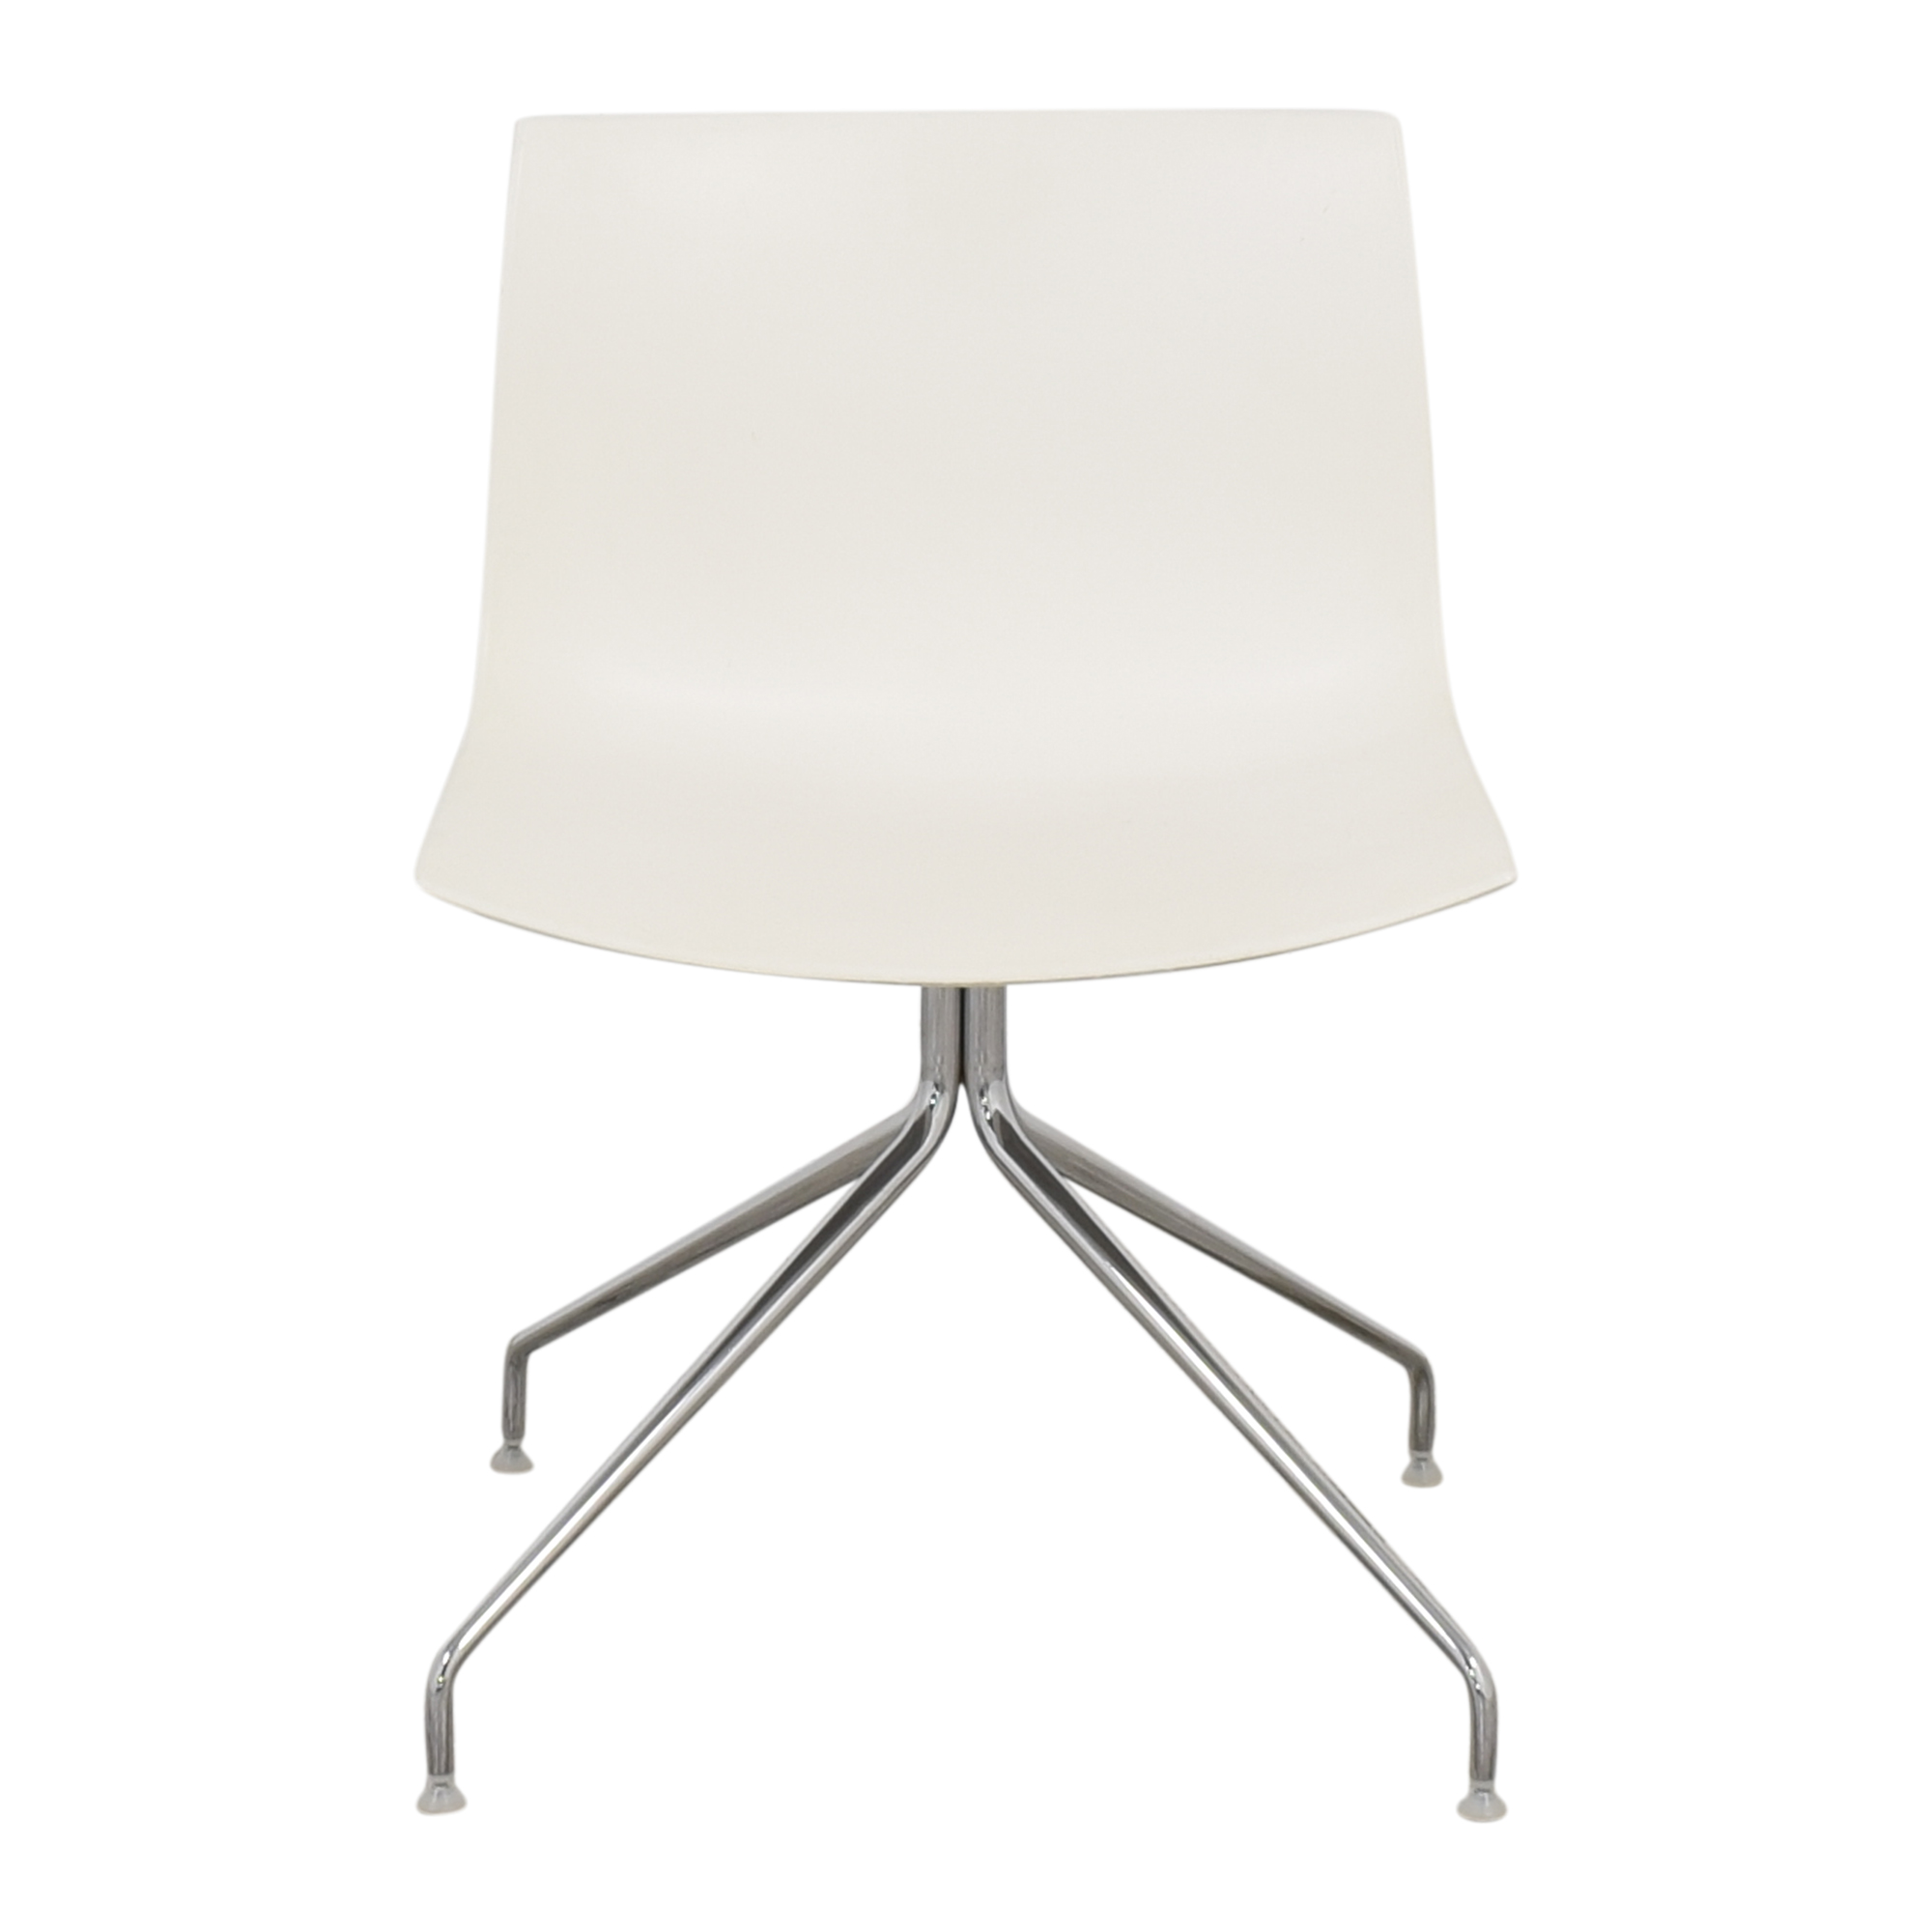 Arper Arper Catifa 46 Trestle Swivel Chair second hand